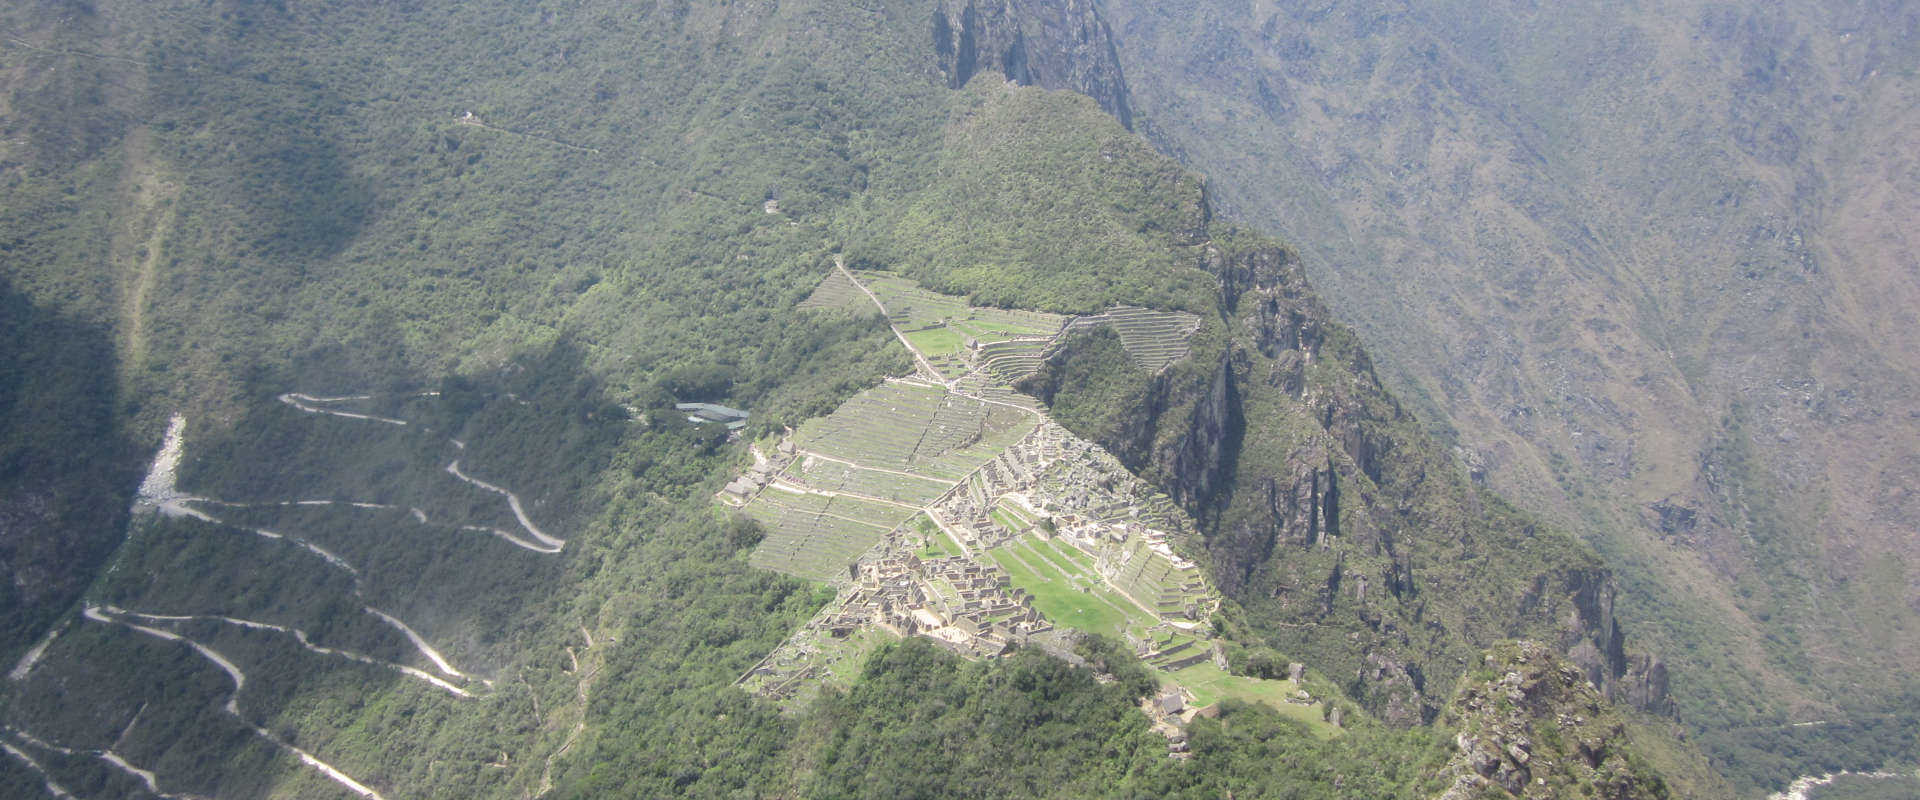 Huayna Picchu from above